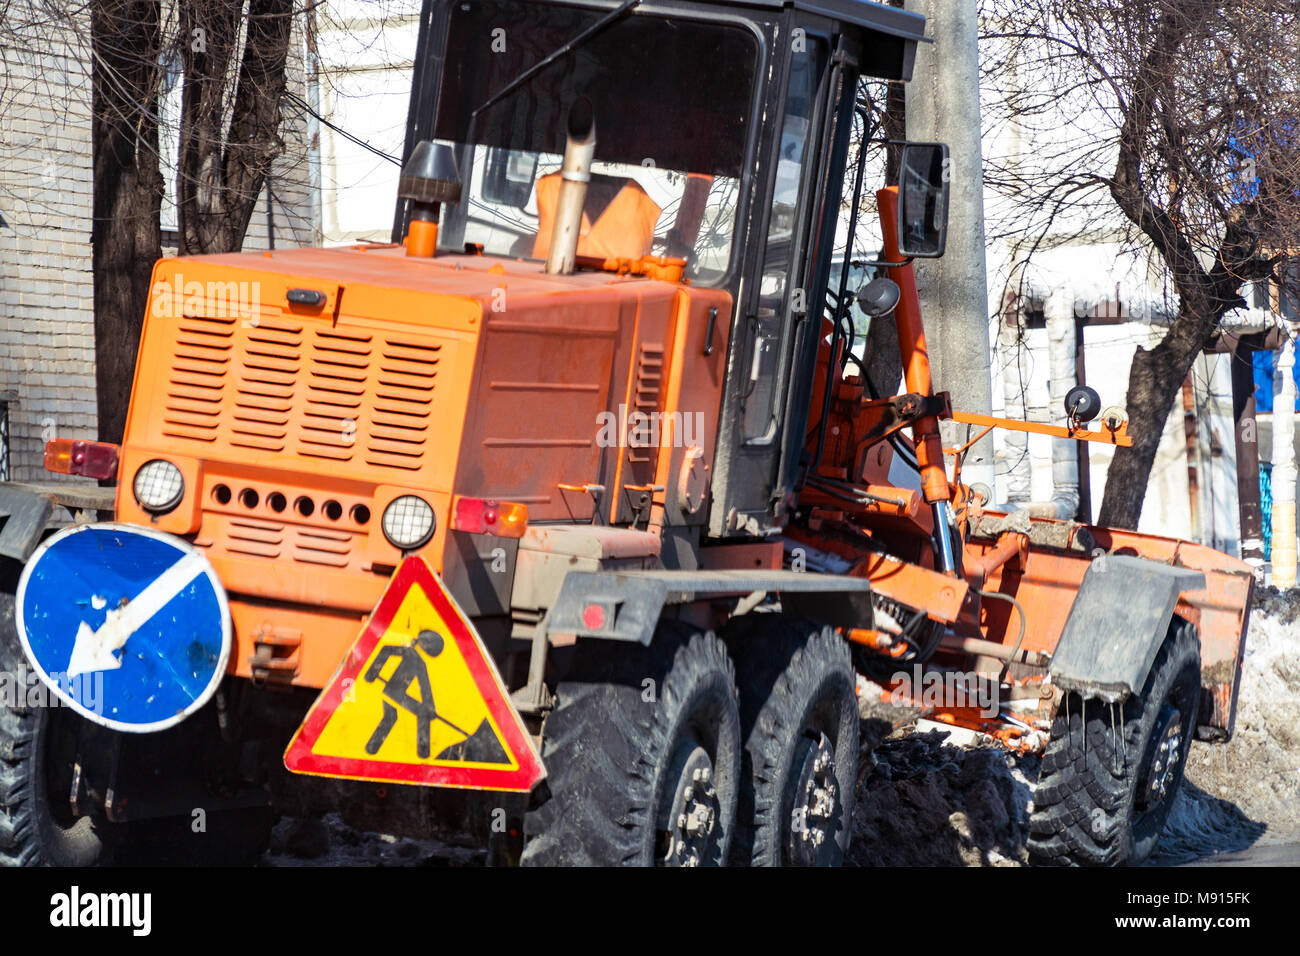 Tractor with snowplow on the street - Stock Image